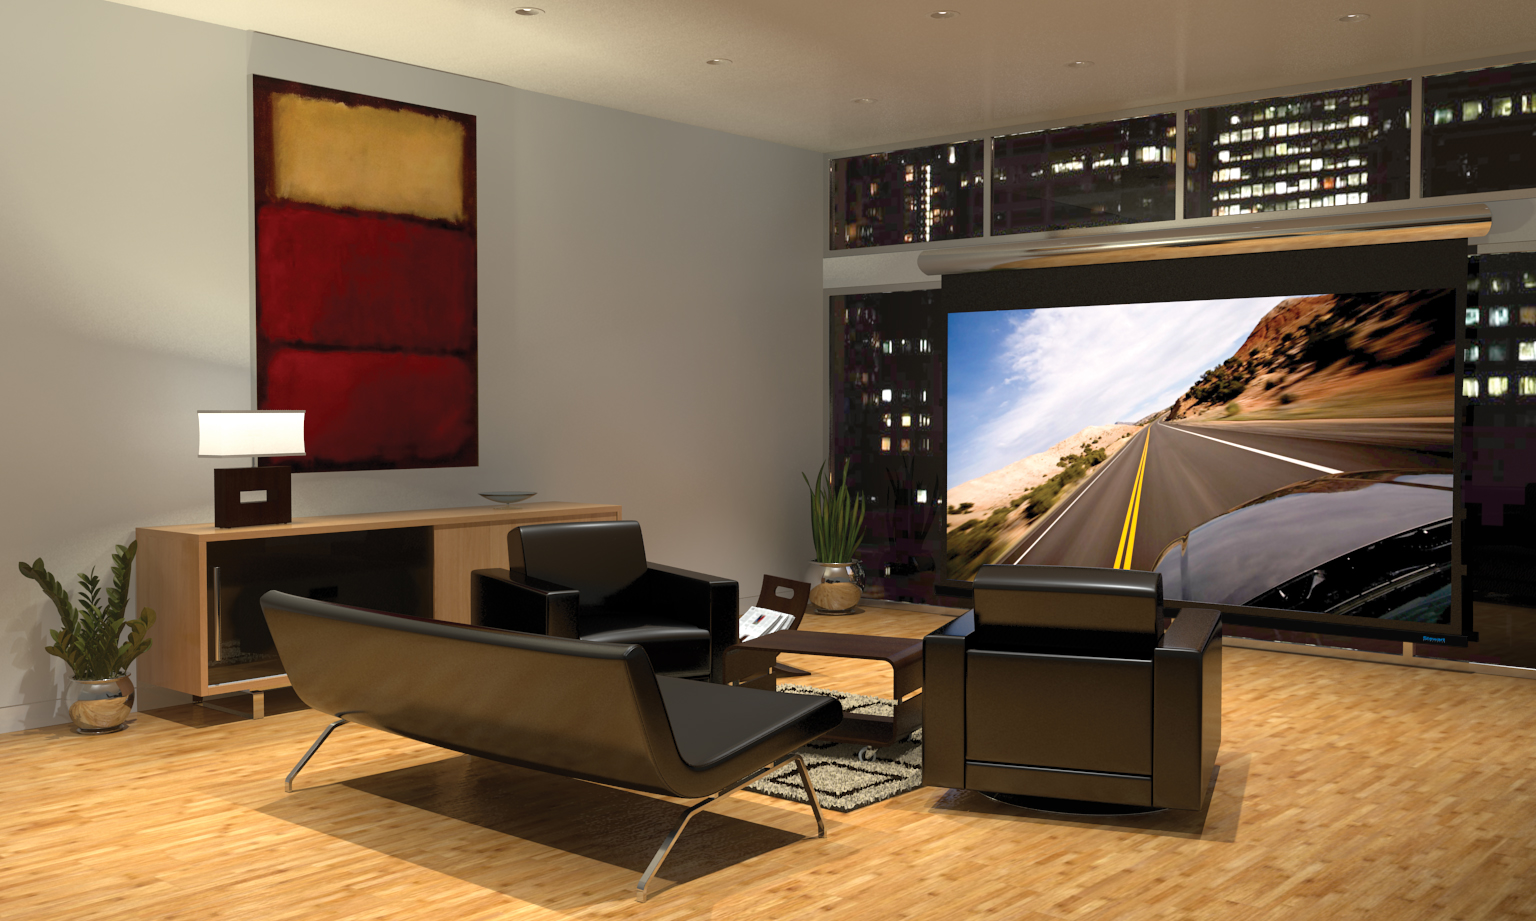 Studiomorado cuarto de entretenimiento entertainment room Modern home theater design ideas